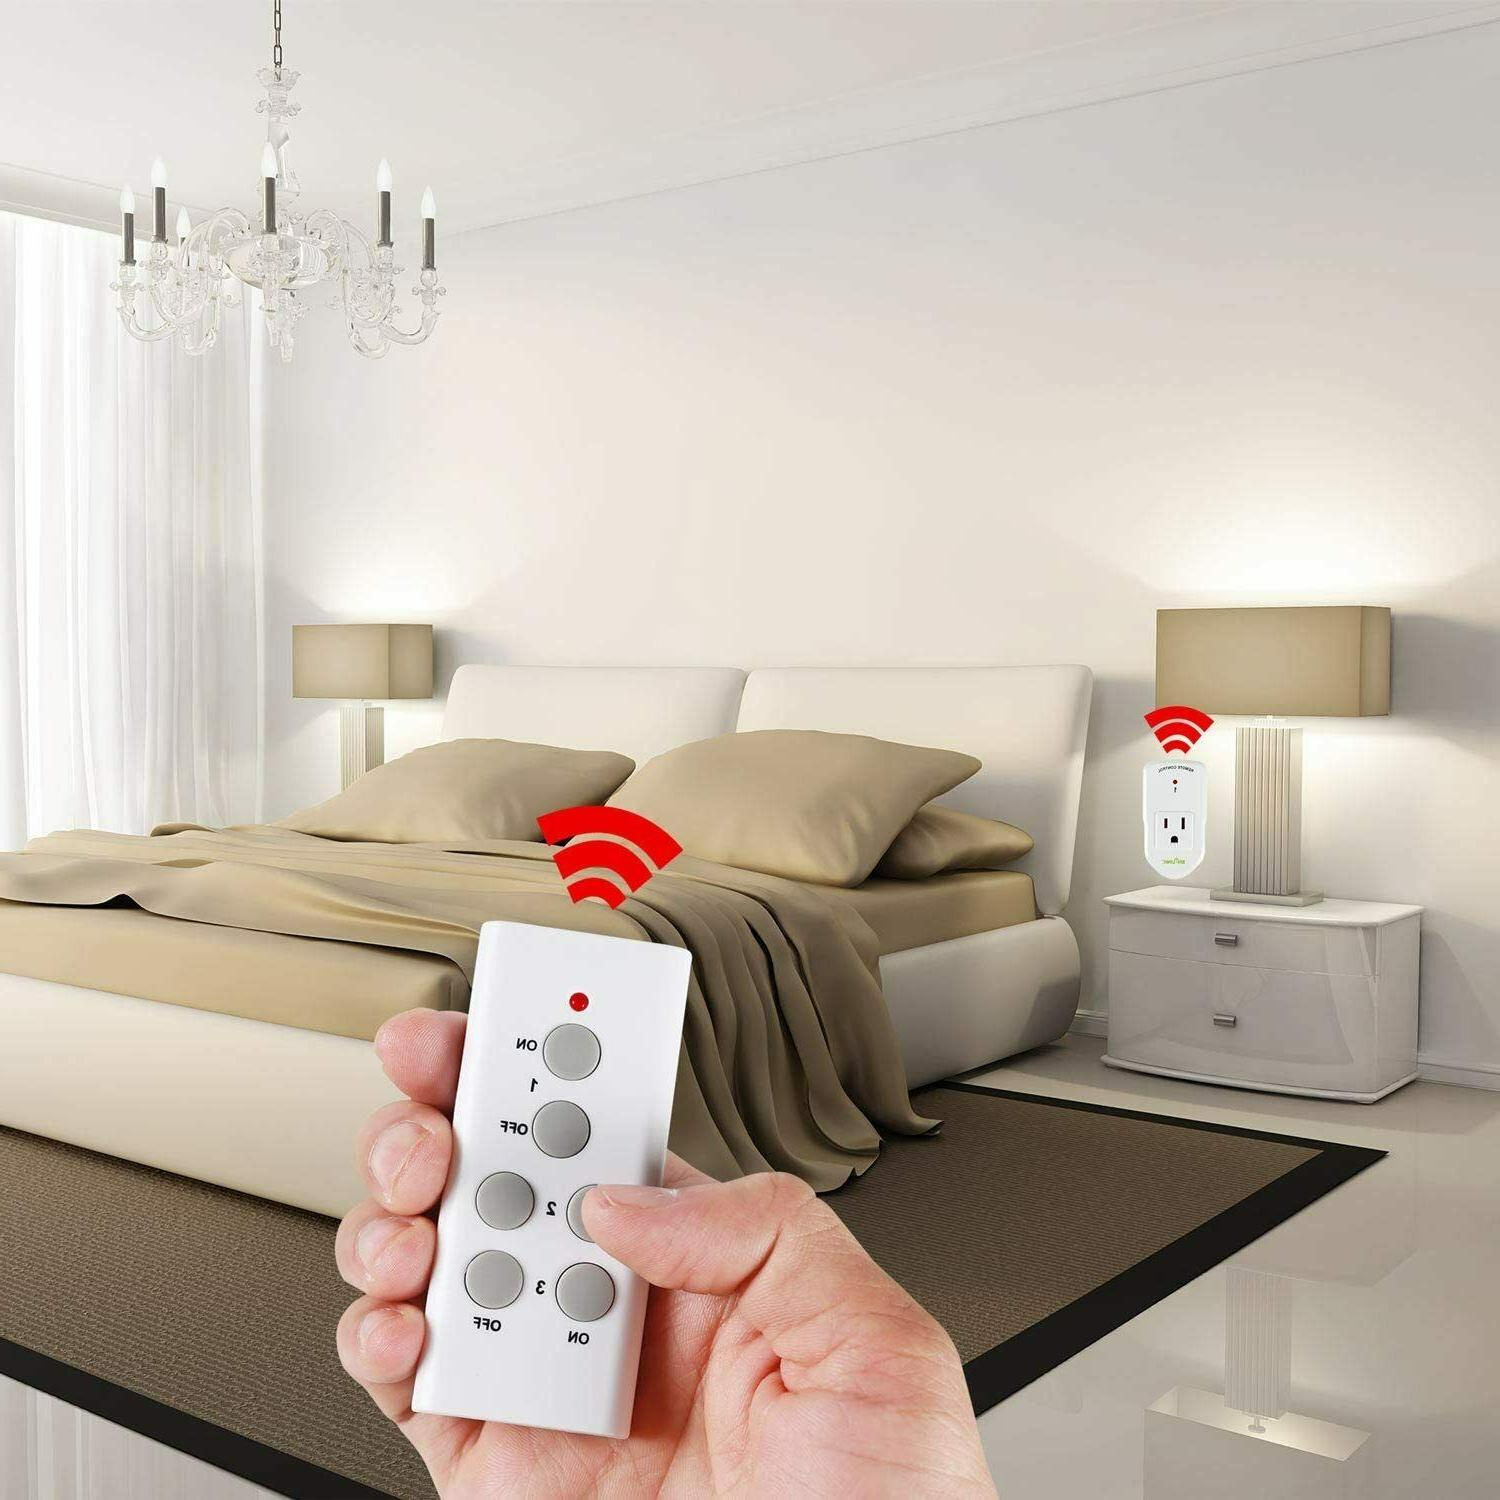 BN LINK Remote Control Electrical for Appliance